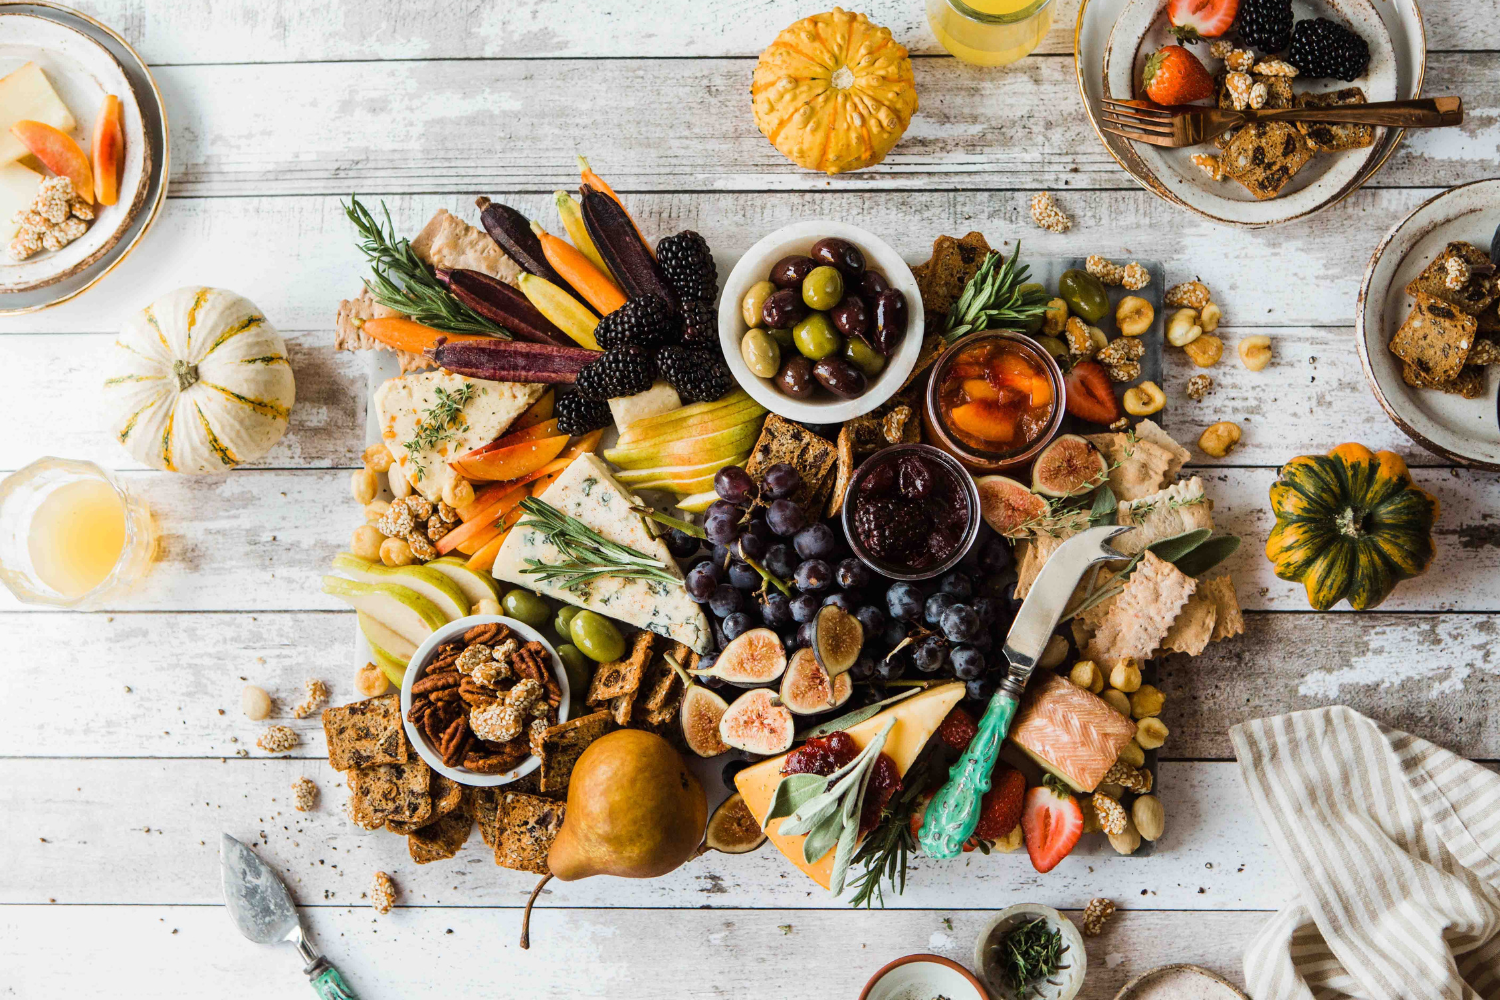 White wooden table with a charcuterie board filled with sliced meats, cheeses, and fruits; what the timing of your IBS symptoms says about your triggers